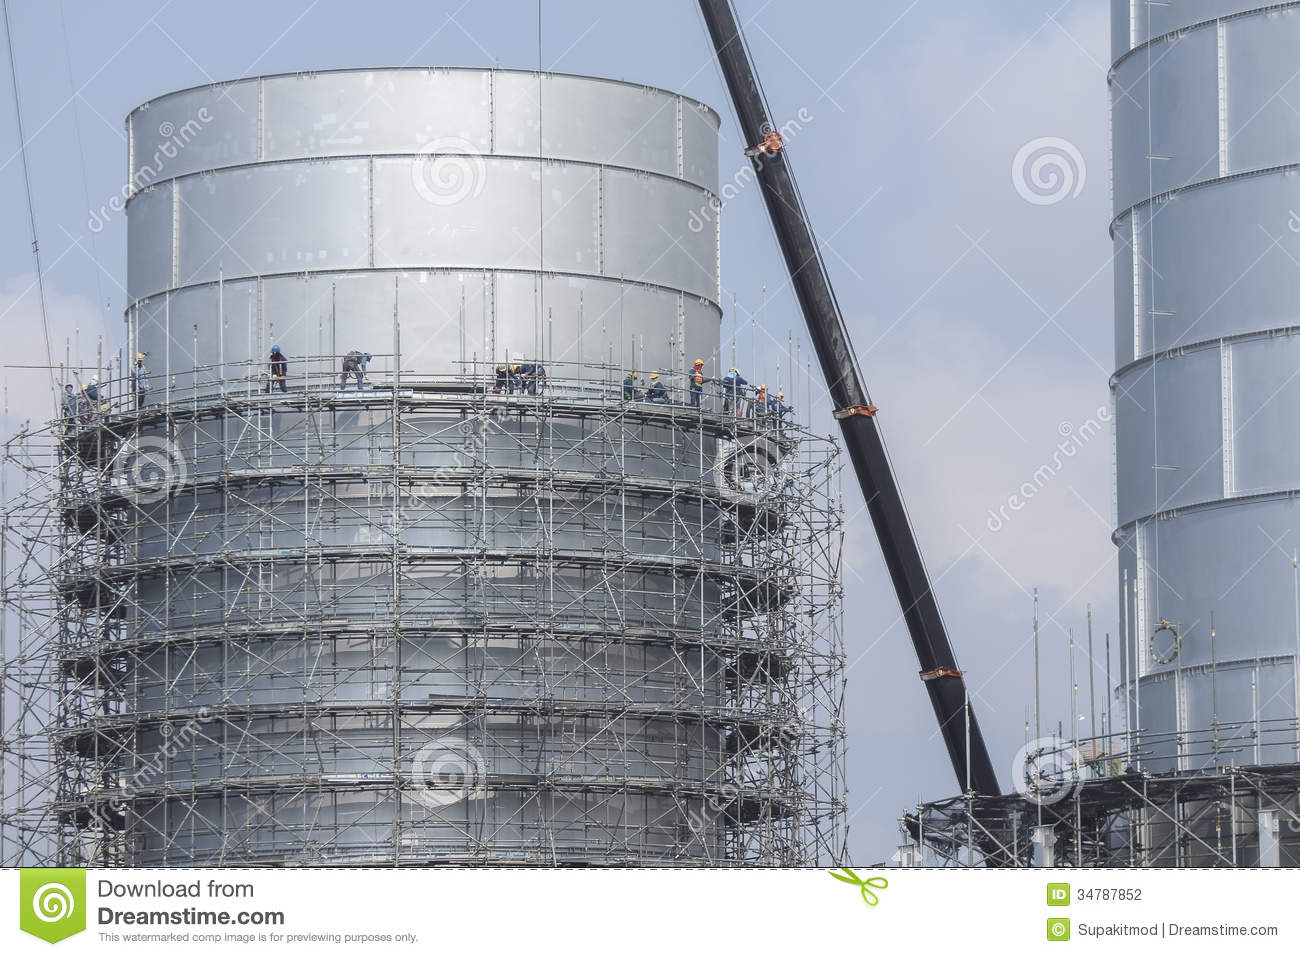 Scaffolding Structure Of Tank Storage In Industrial Factory